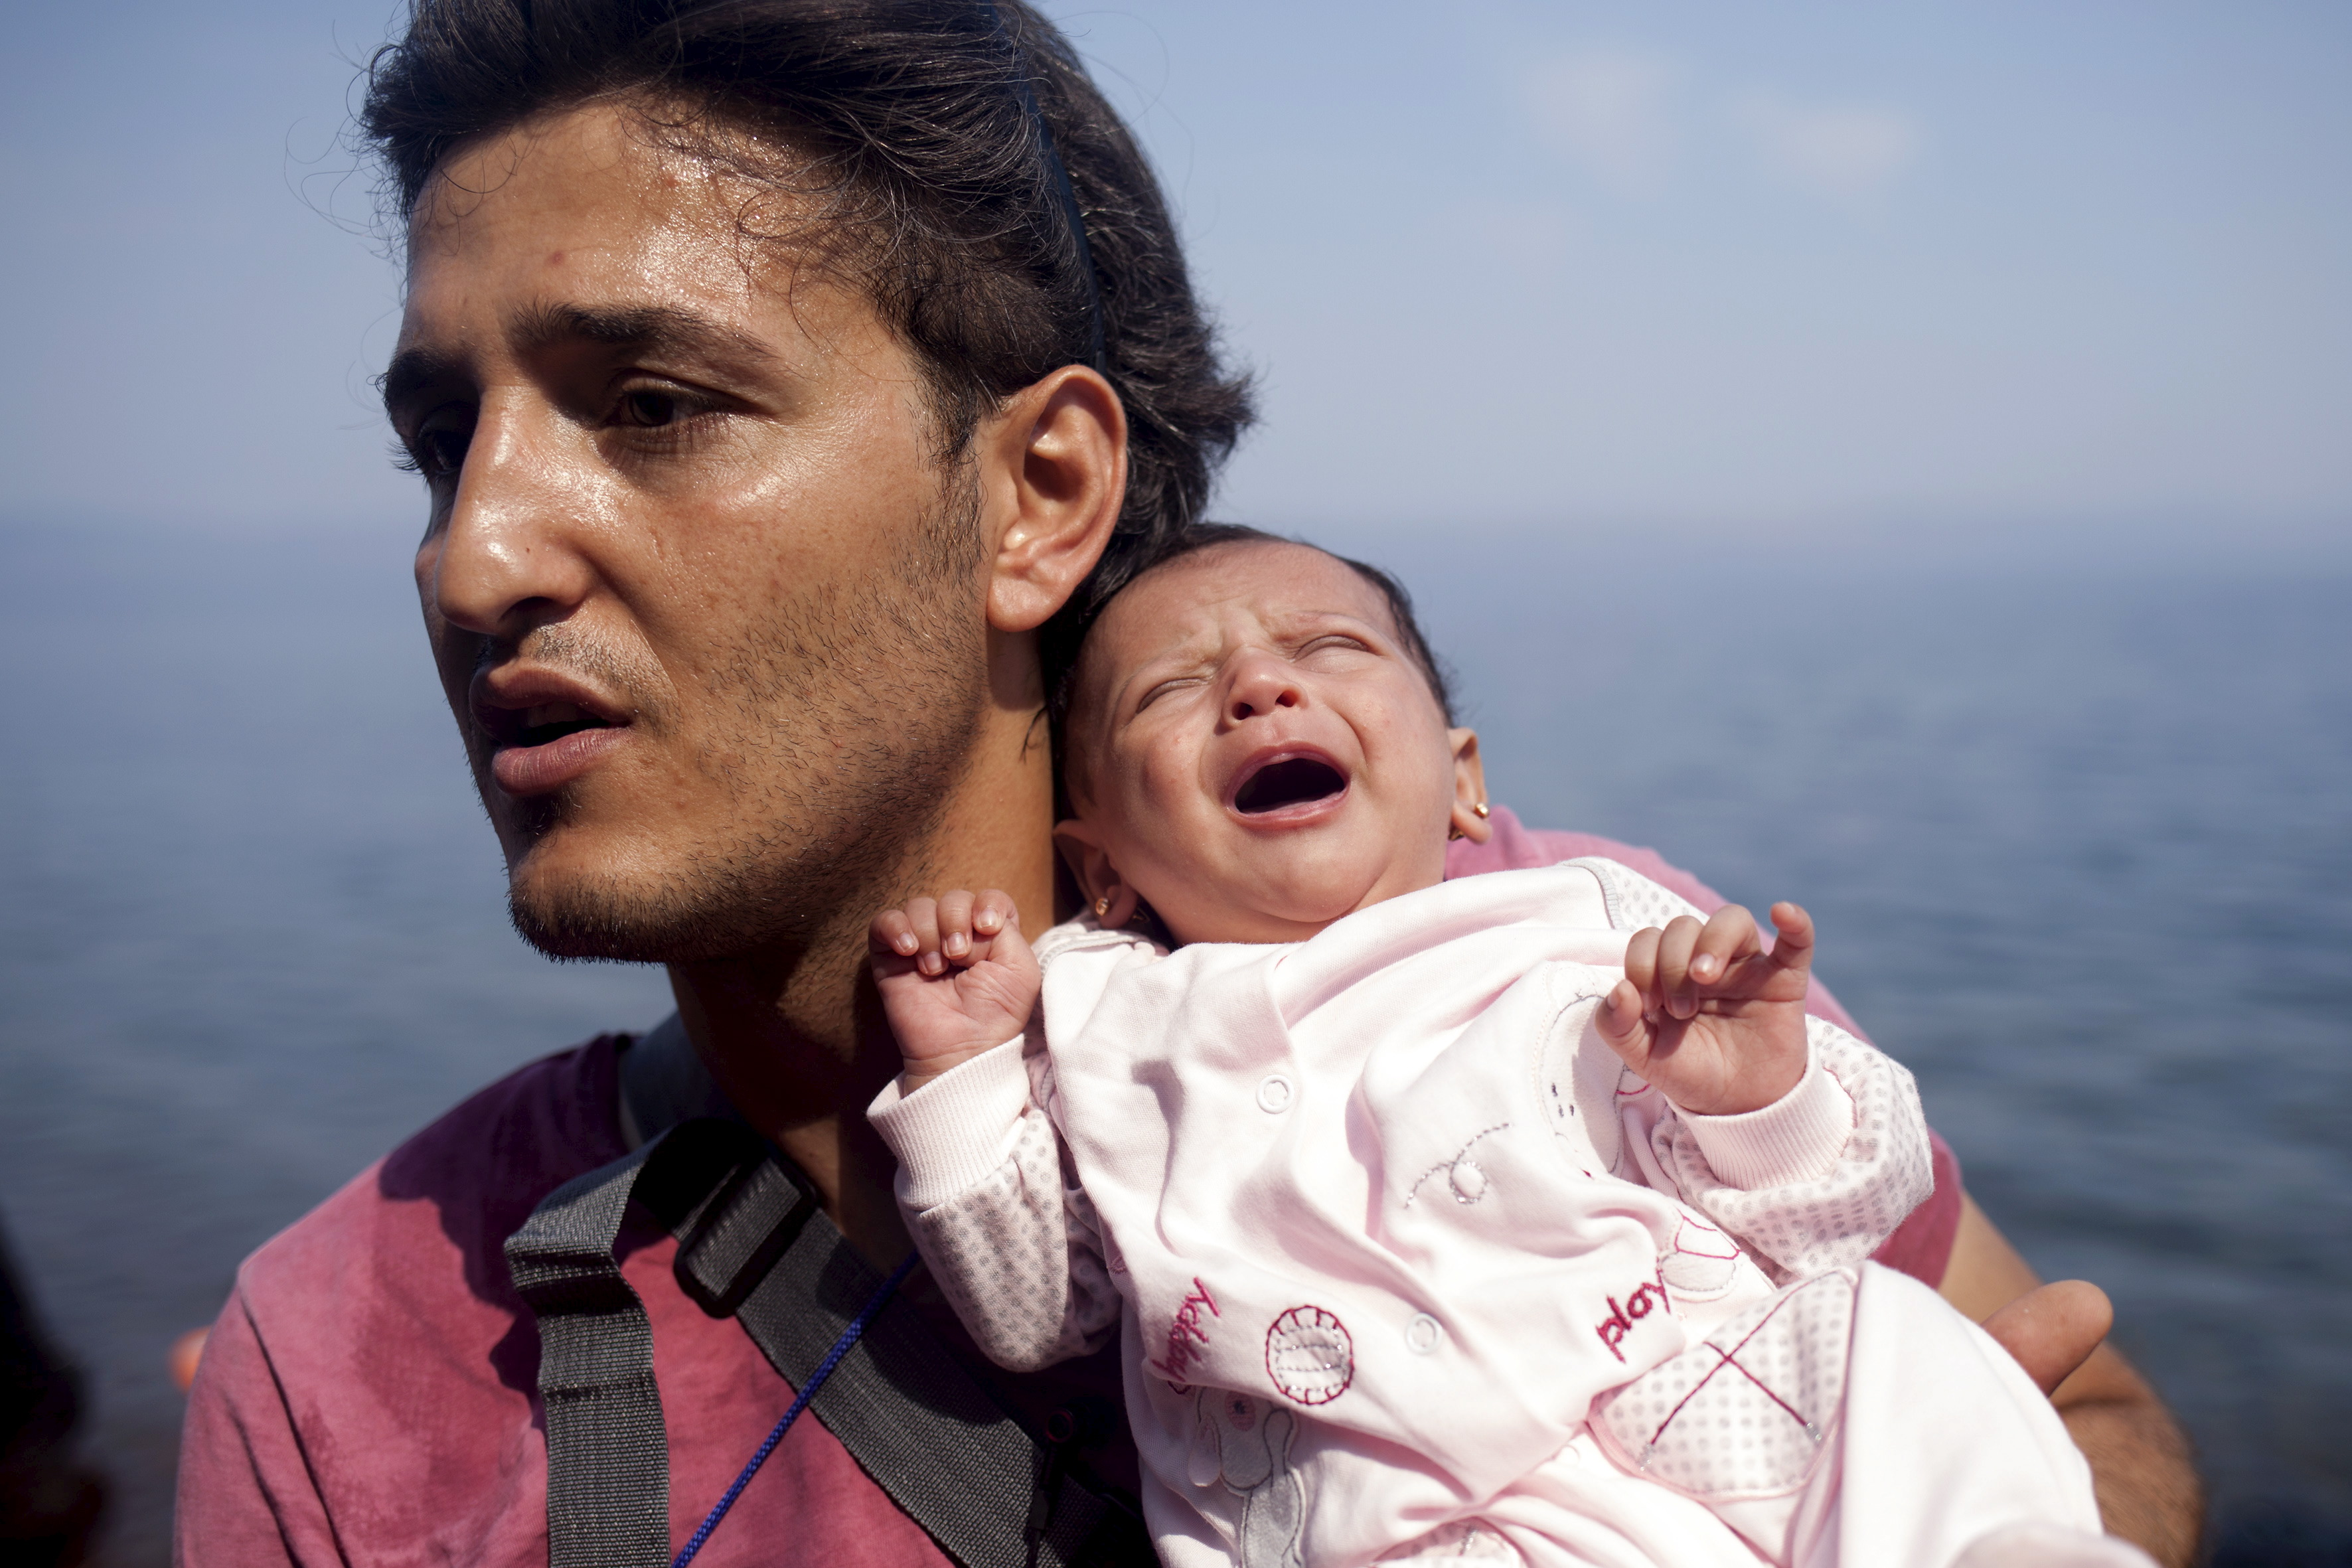 A Syrian refugee from Aleppo holds his one month old daughter moments after arriving on a dinghy on the Greek island of Lesbos